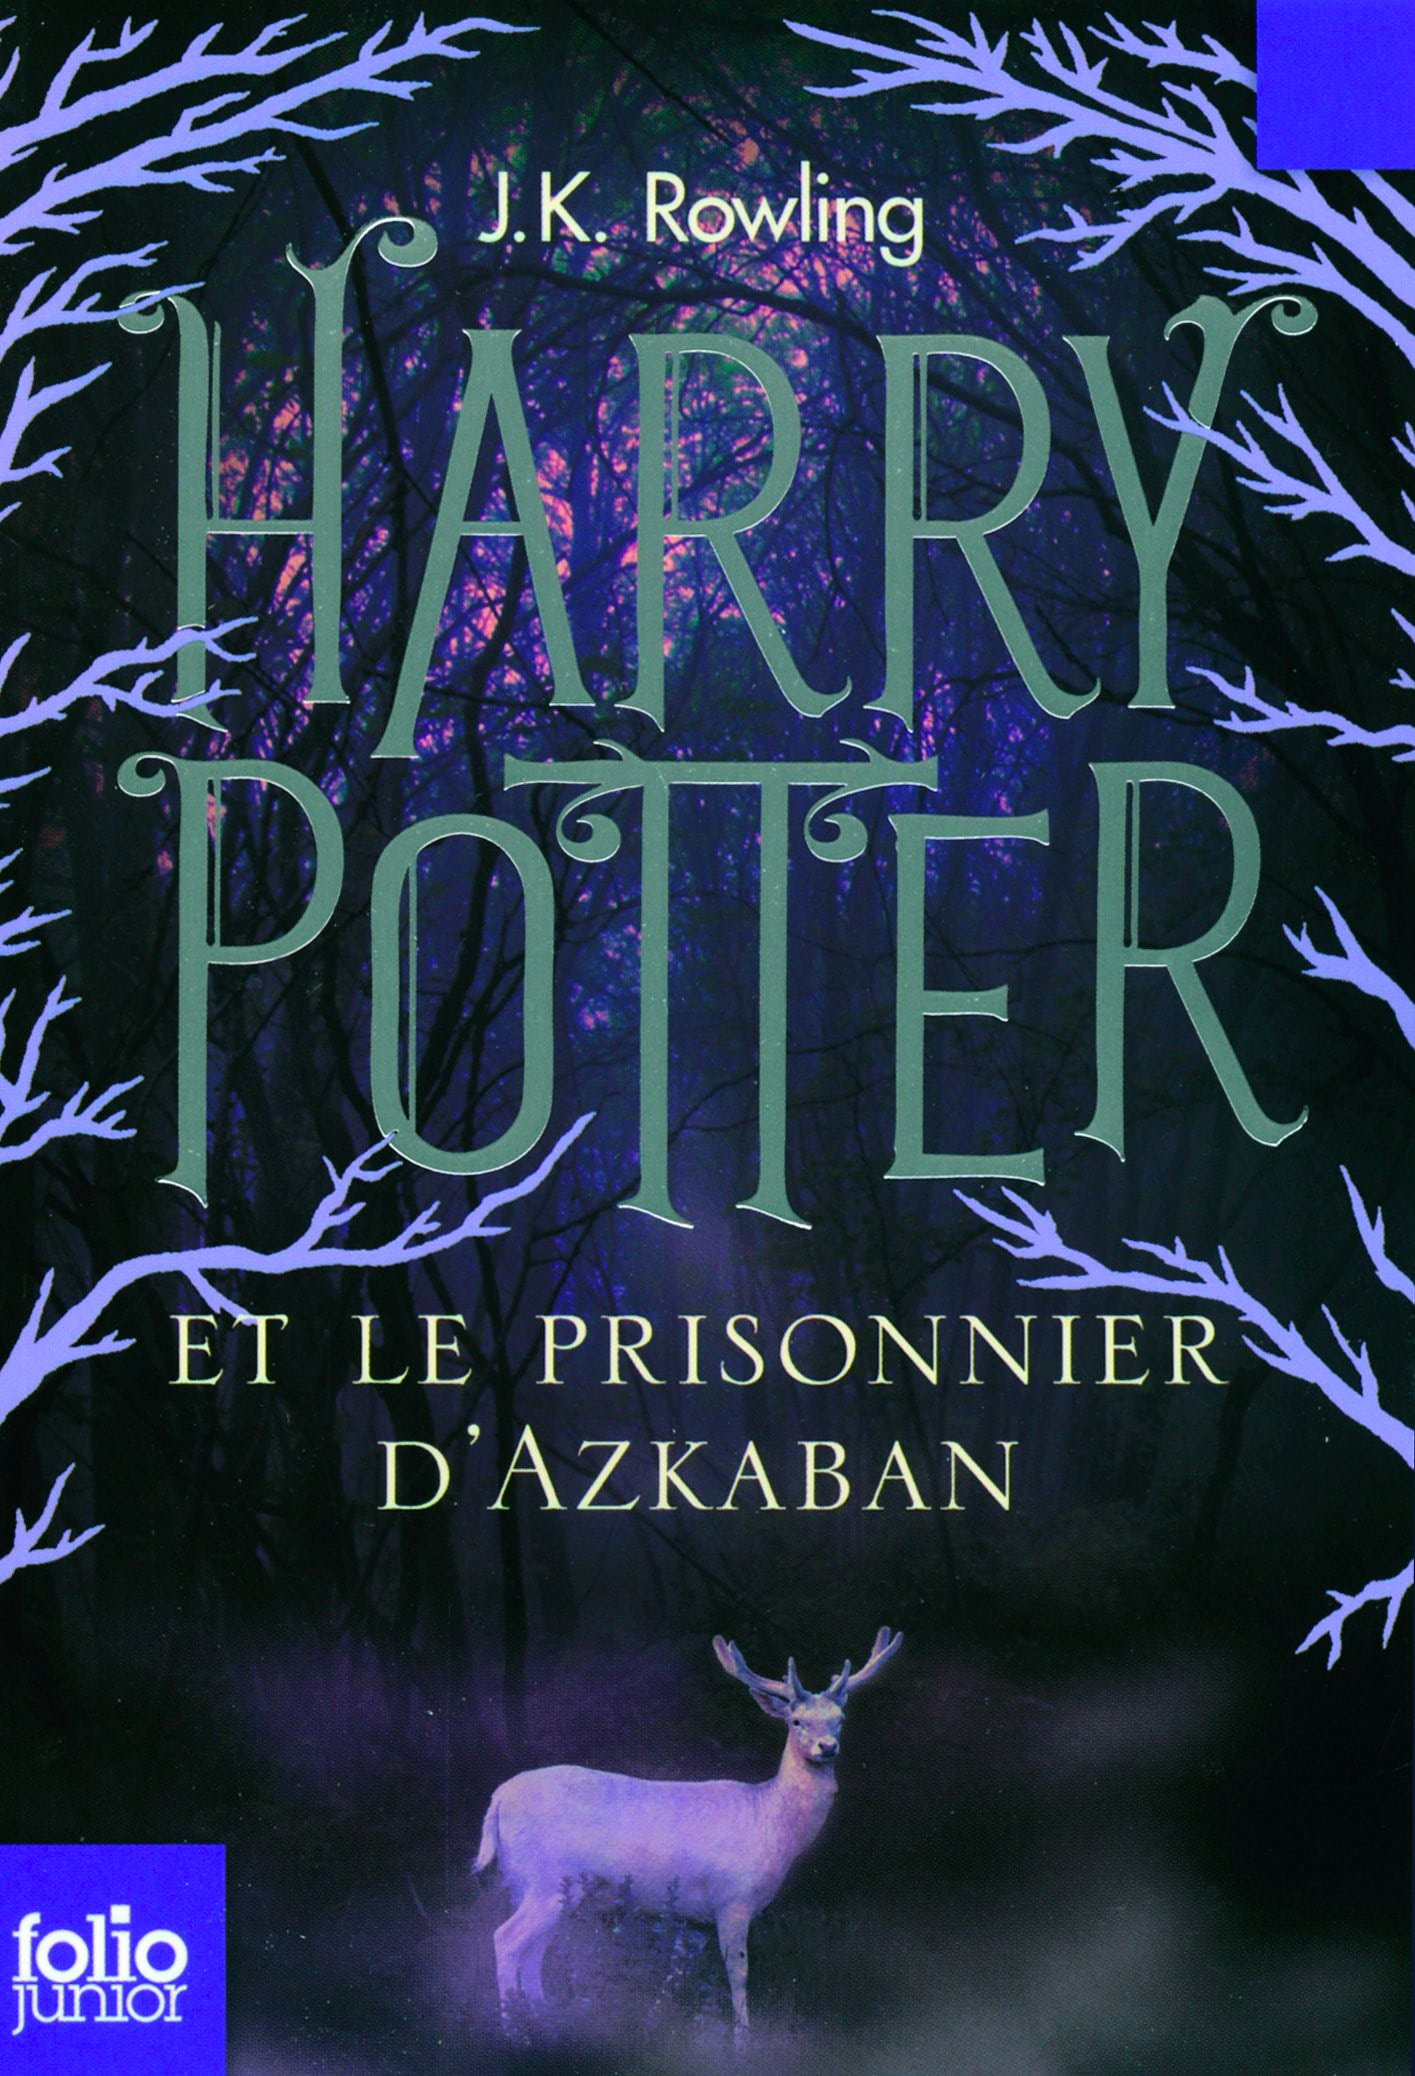 'Prisoner of Azkaban' French adult edition